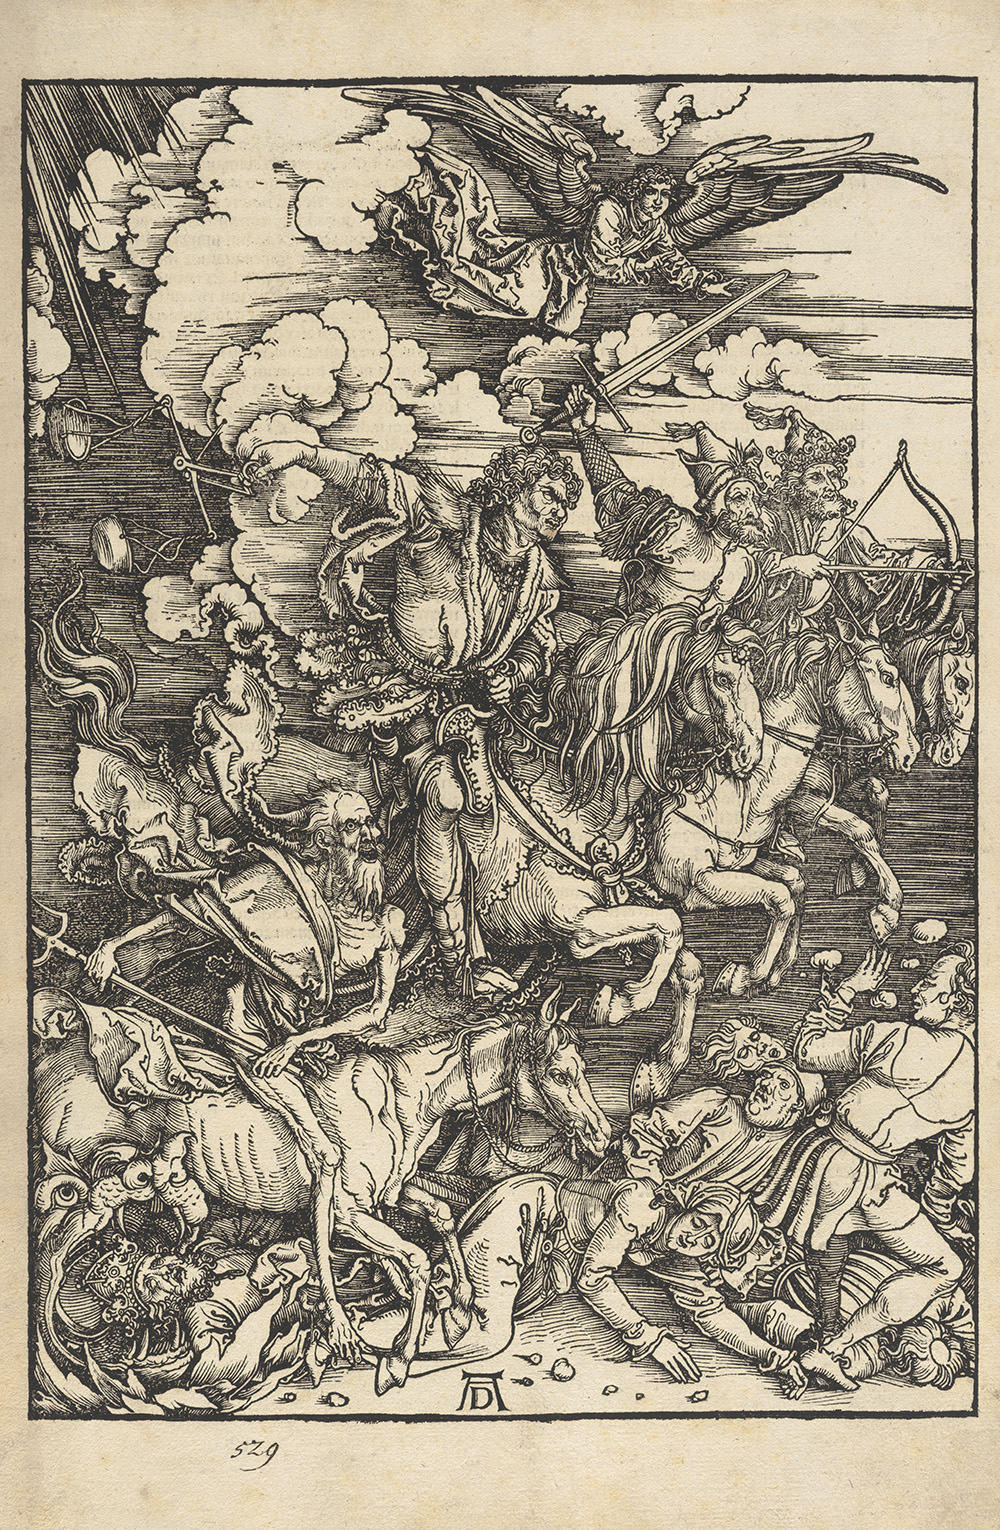 No Little Art: Dürer's Apocalypse and Northern Renaissance Prints